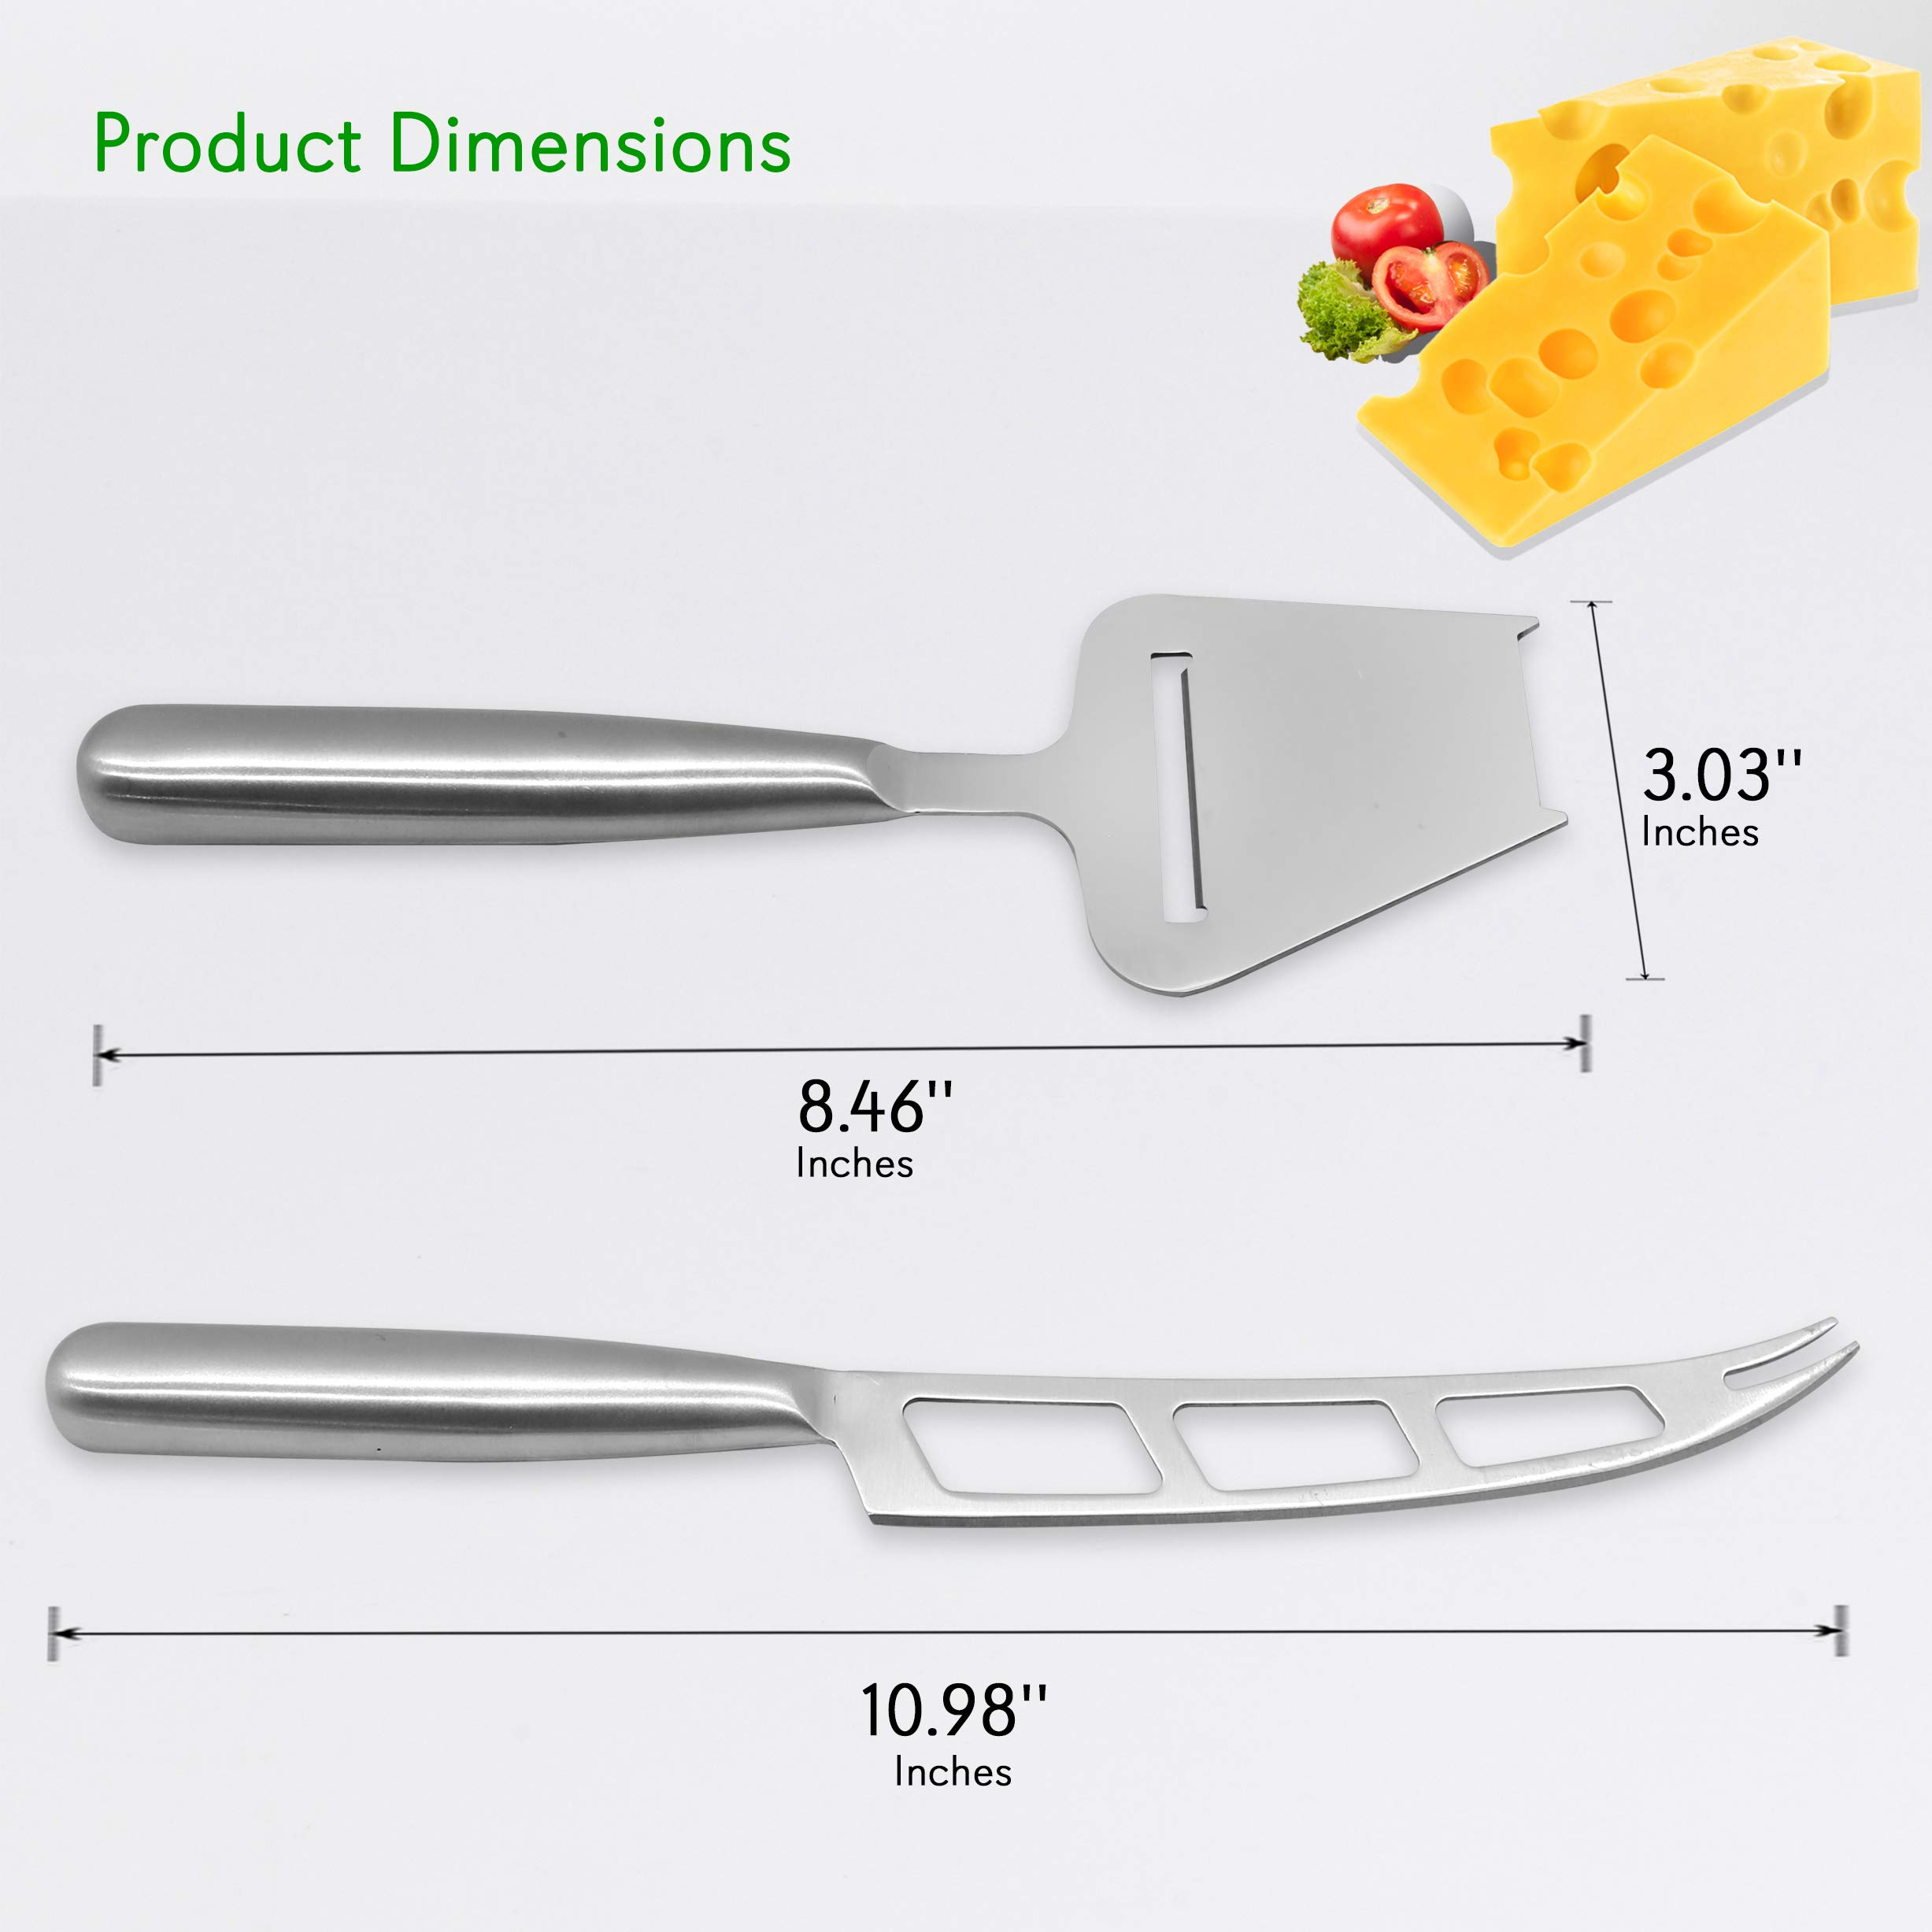 2 Piece Cheese Cutting Set - Portable Fancy Stainless Steel Non Stick Cheese Cutter Knife and Cheese Slicer - Cut, Shave, Slice, Serve, Spread - Gouda Blue Brie Parmesan Cheddar - NutriChef PKCNF10 by Nutrichef (Image #7)